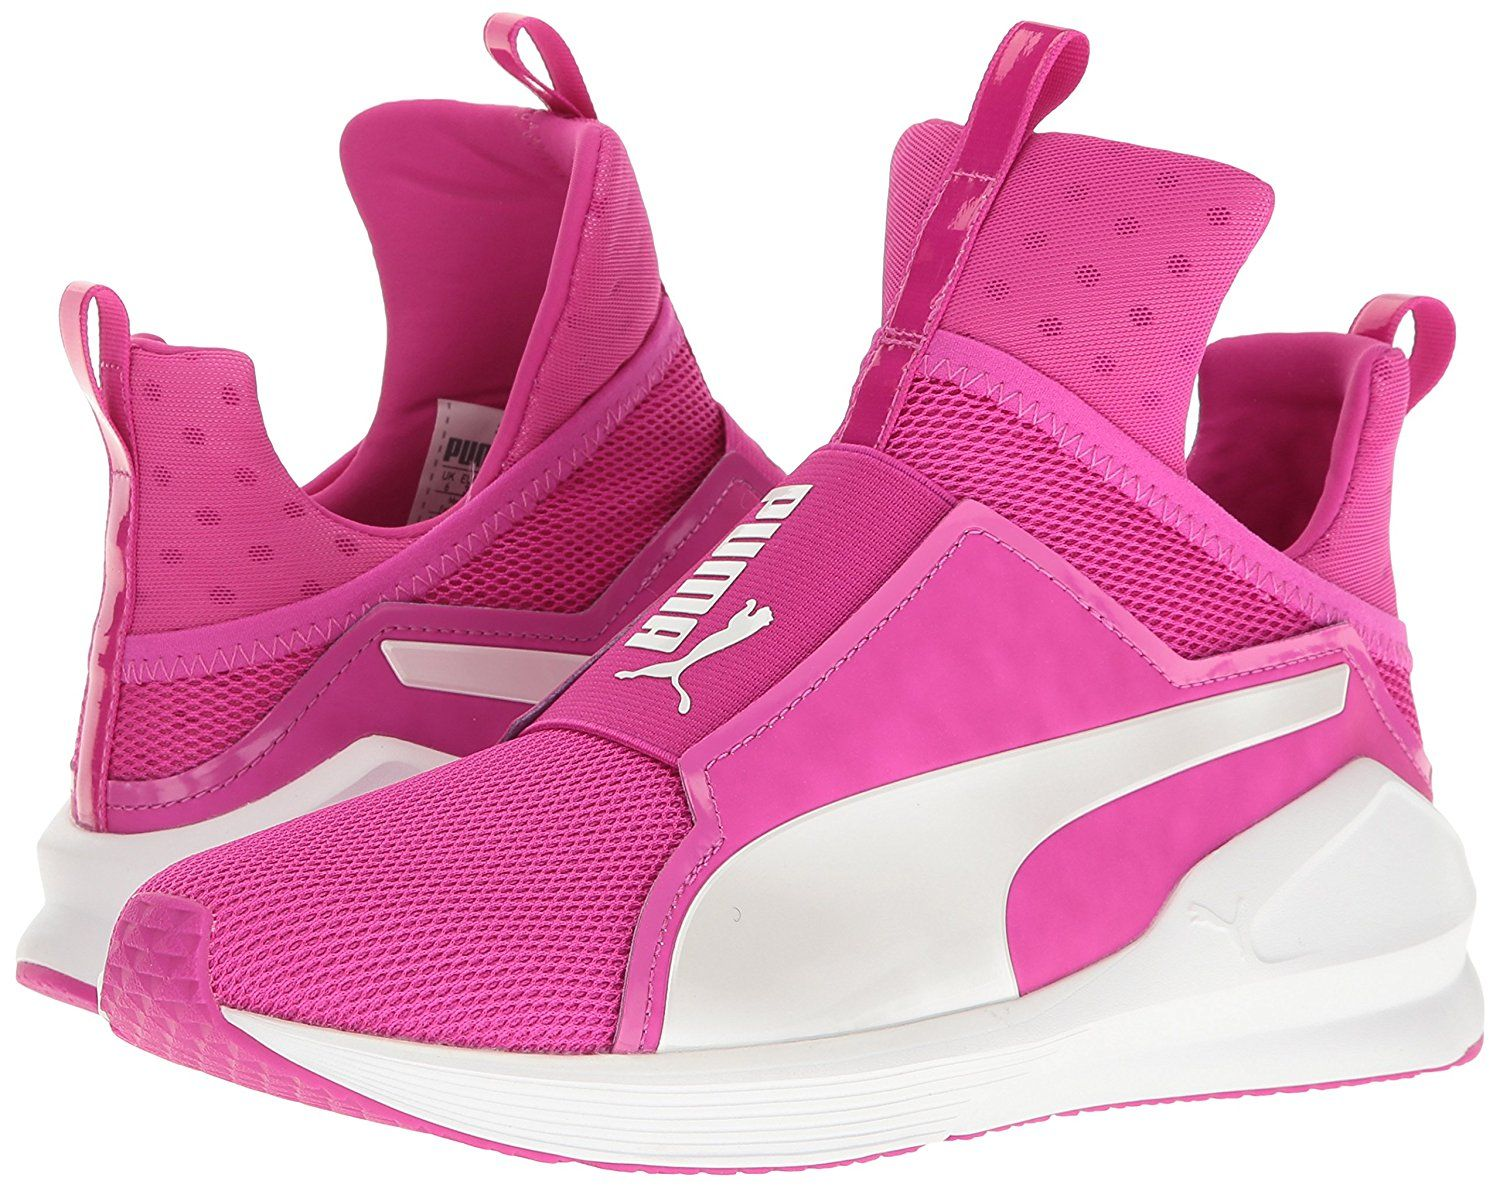 6c3117907dcd PUMA Women s Fierce Core Cross-Trainer Shoe Puma Fierce Core is a Lace-less  high-top cross-trainer with breathable mesh insets and goring across the  top for ...